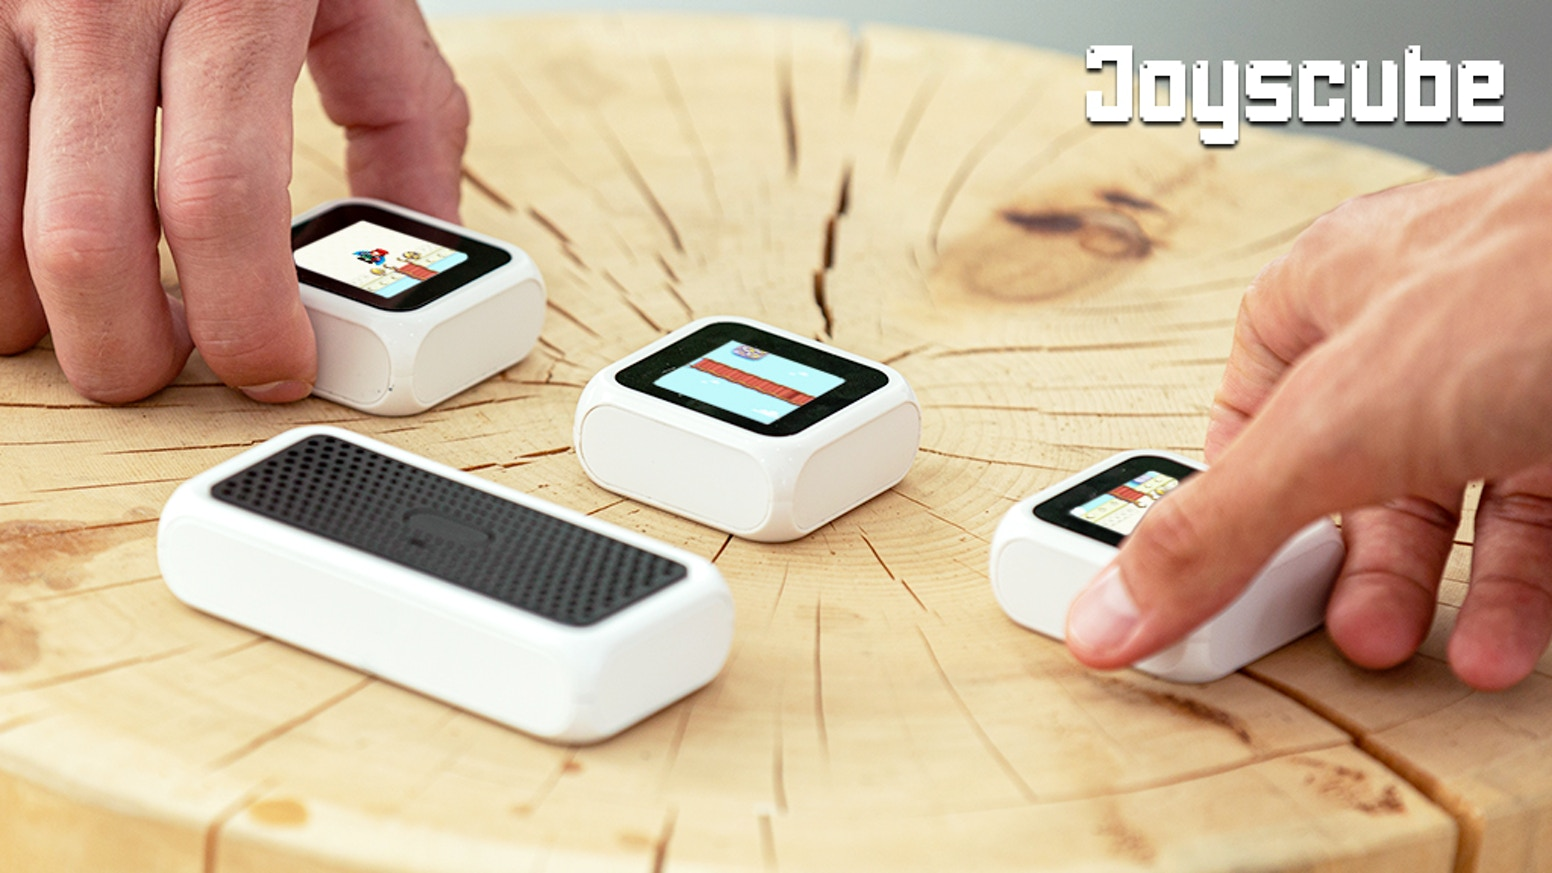 A video game system that gives you the physical and social interactivity that board games would deliver.